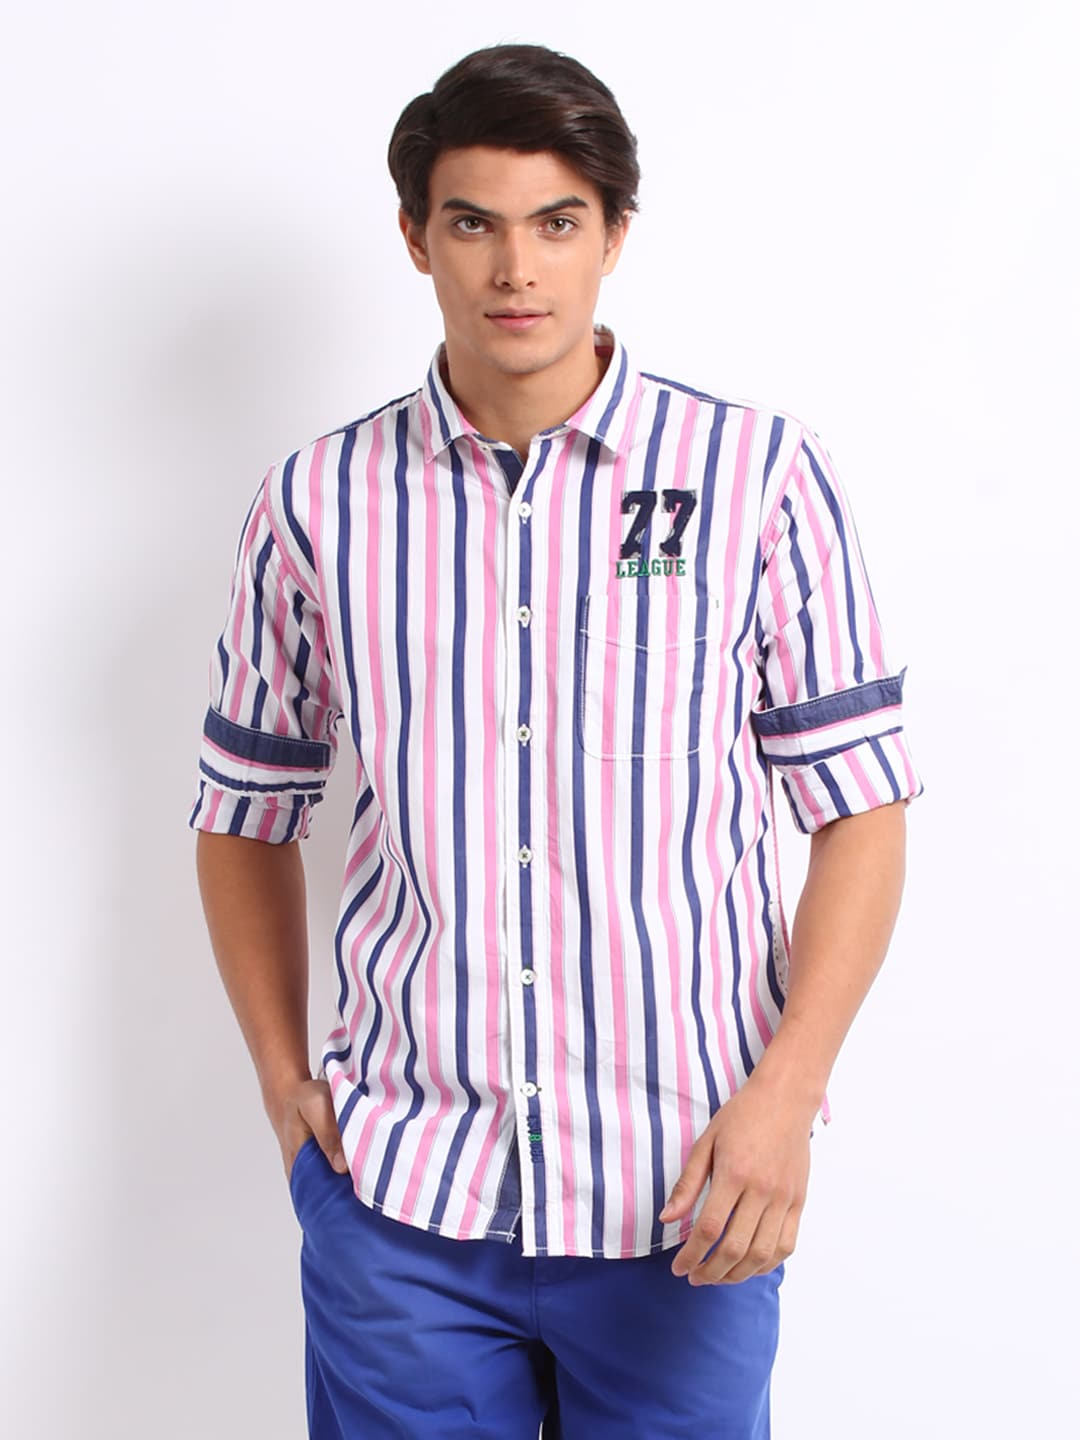 Probase Probase Men Blue And Pink Striped Casual Slim Fit Shirt (Multicolor)